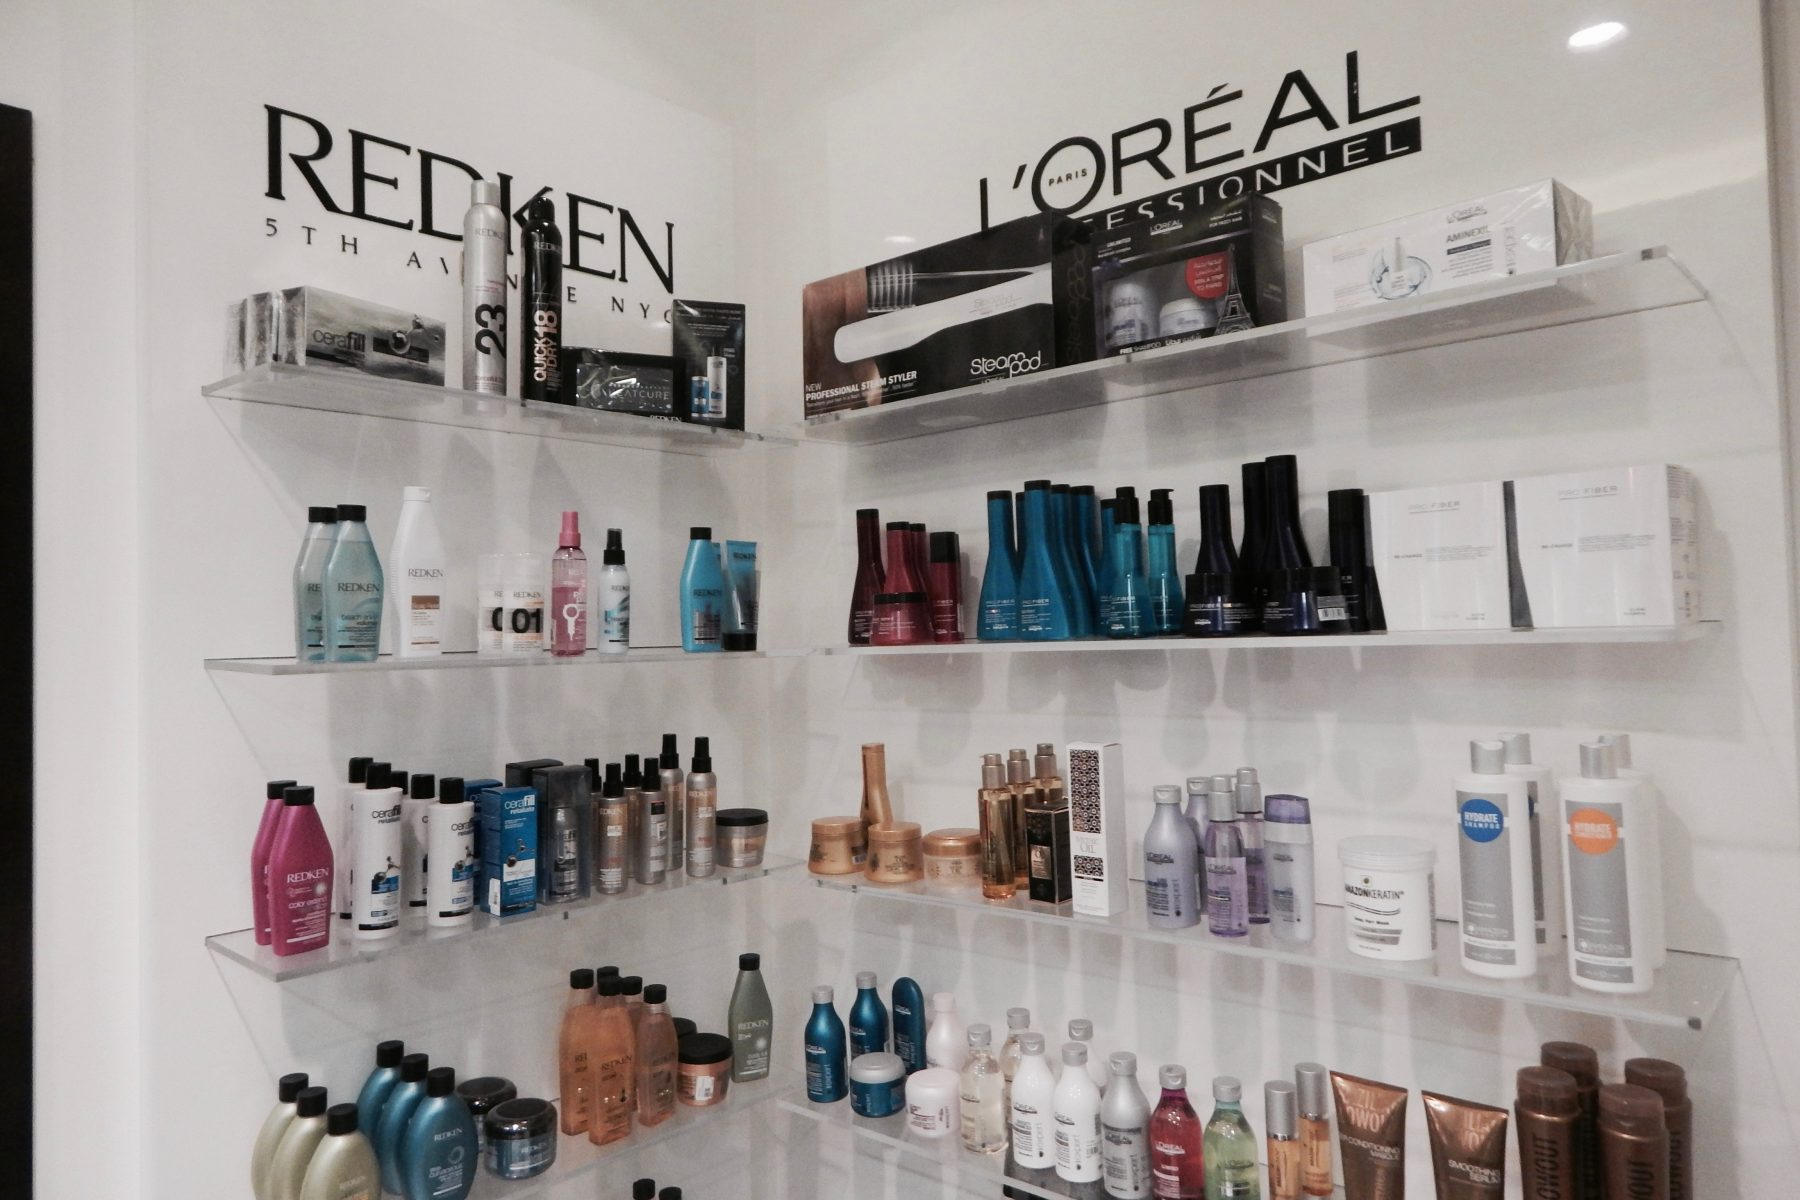 L'areal products